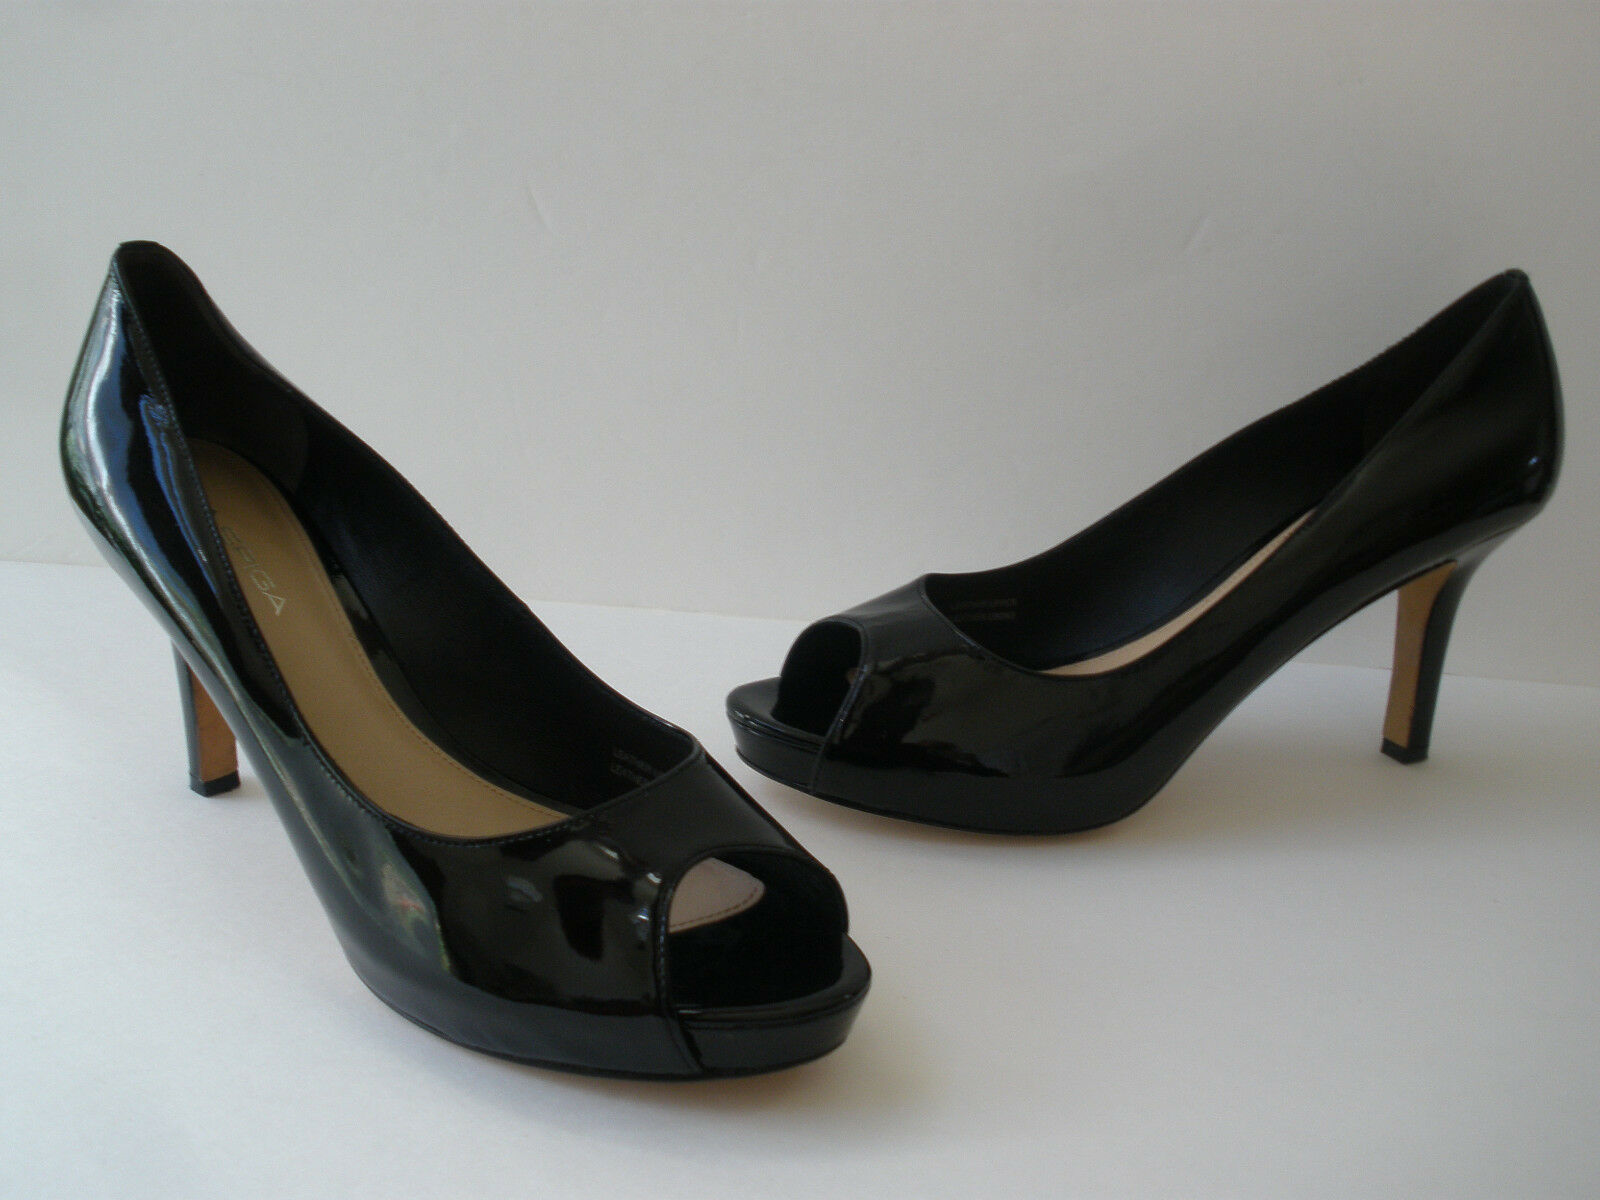 VIA SPIGA PATENT BLACK LEATHER PUMP PEP TOE HEELS 8.5M HOT SEXY  ITALY